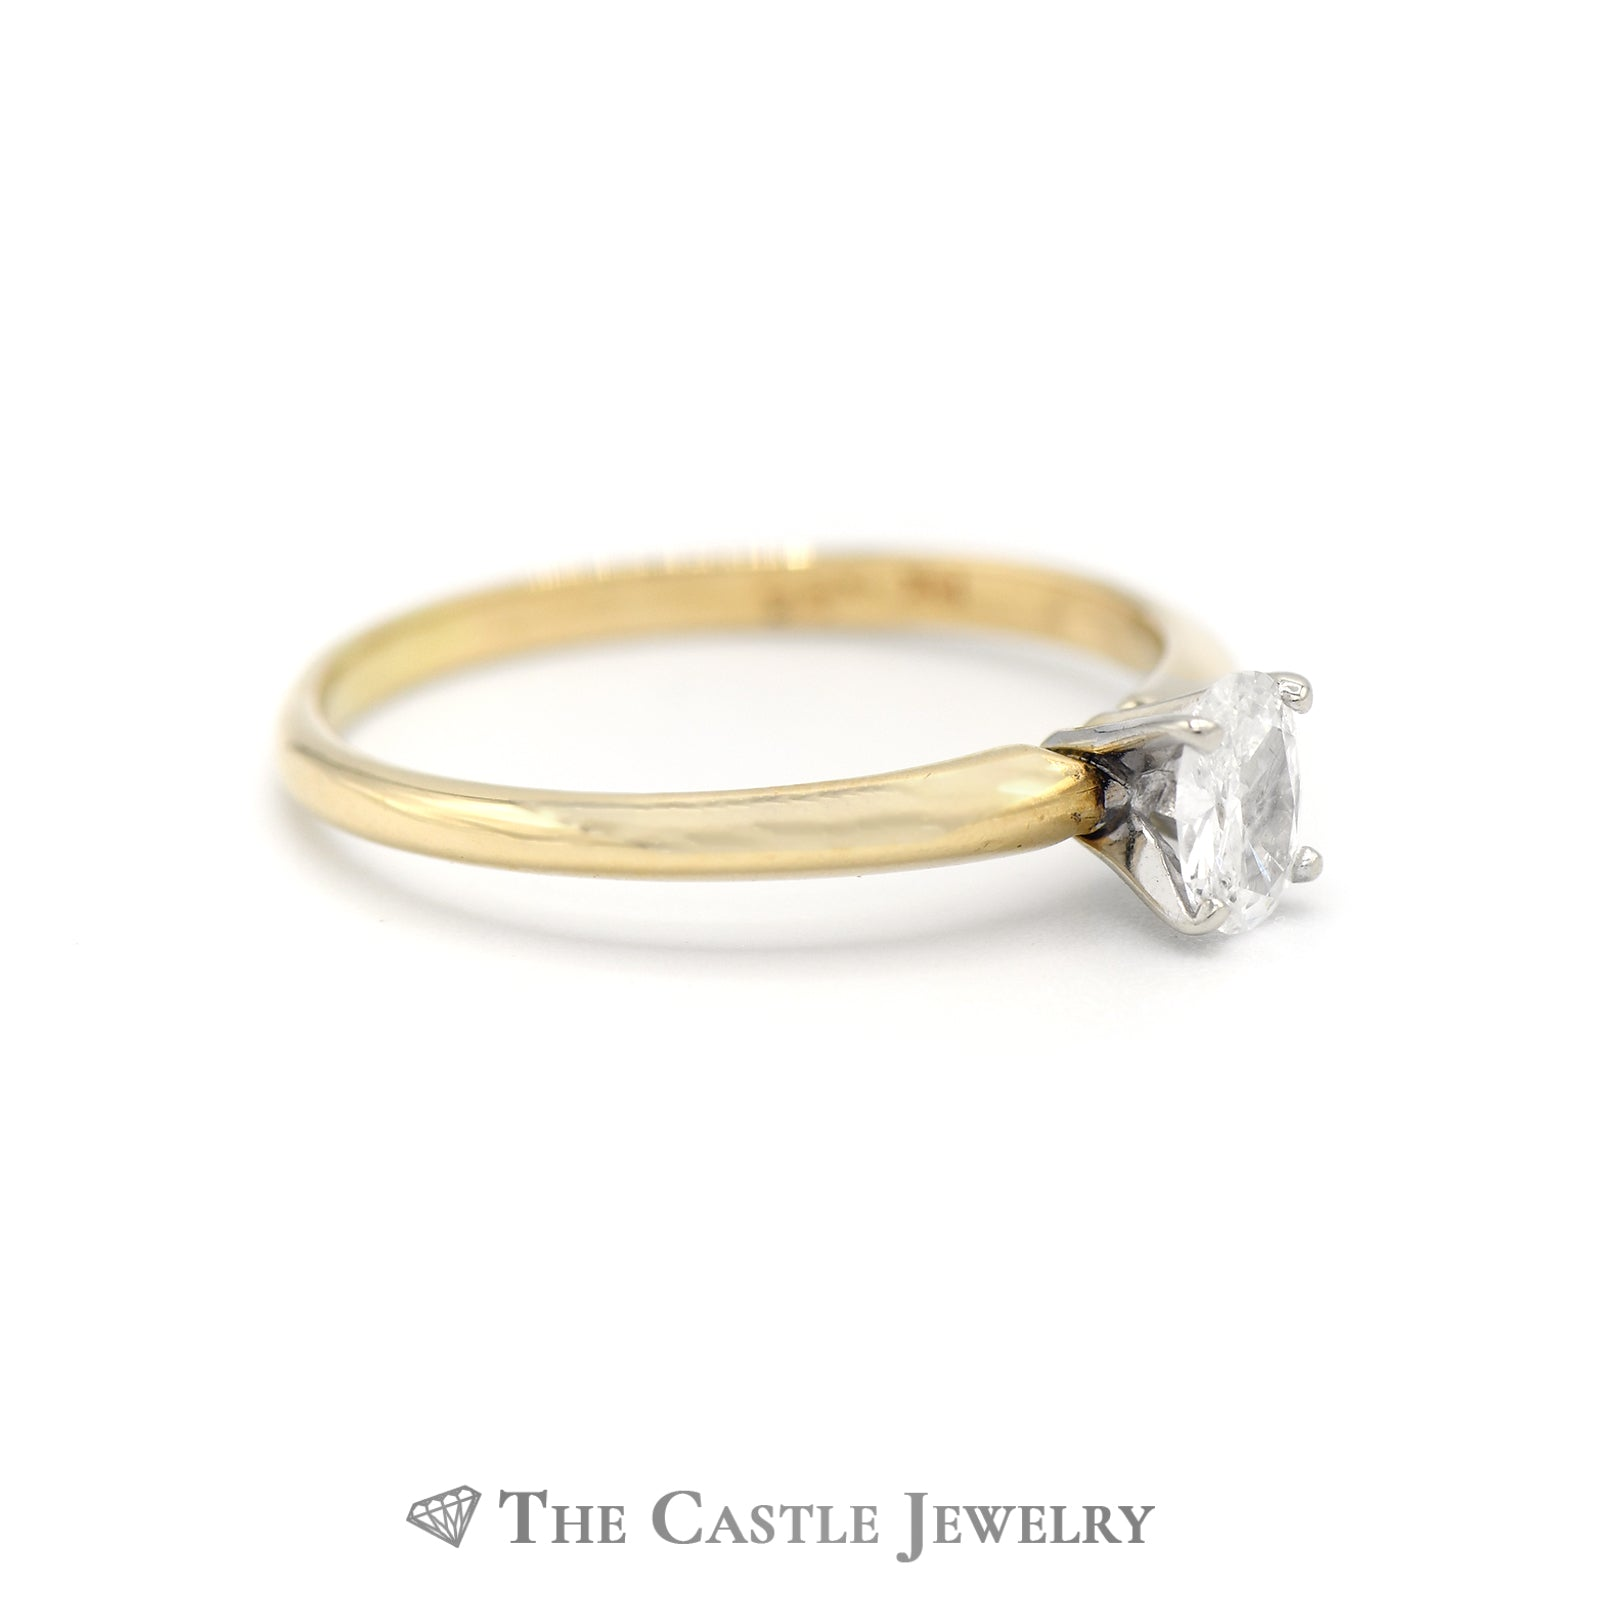 Oval Diamond Solitaire Engagement Ring in 14k Yellow Gold-2